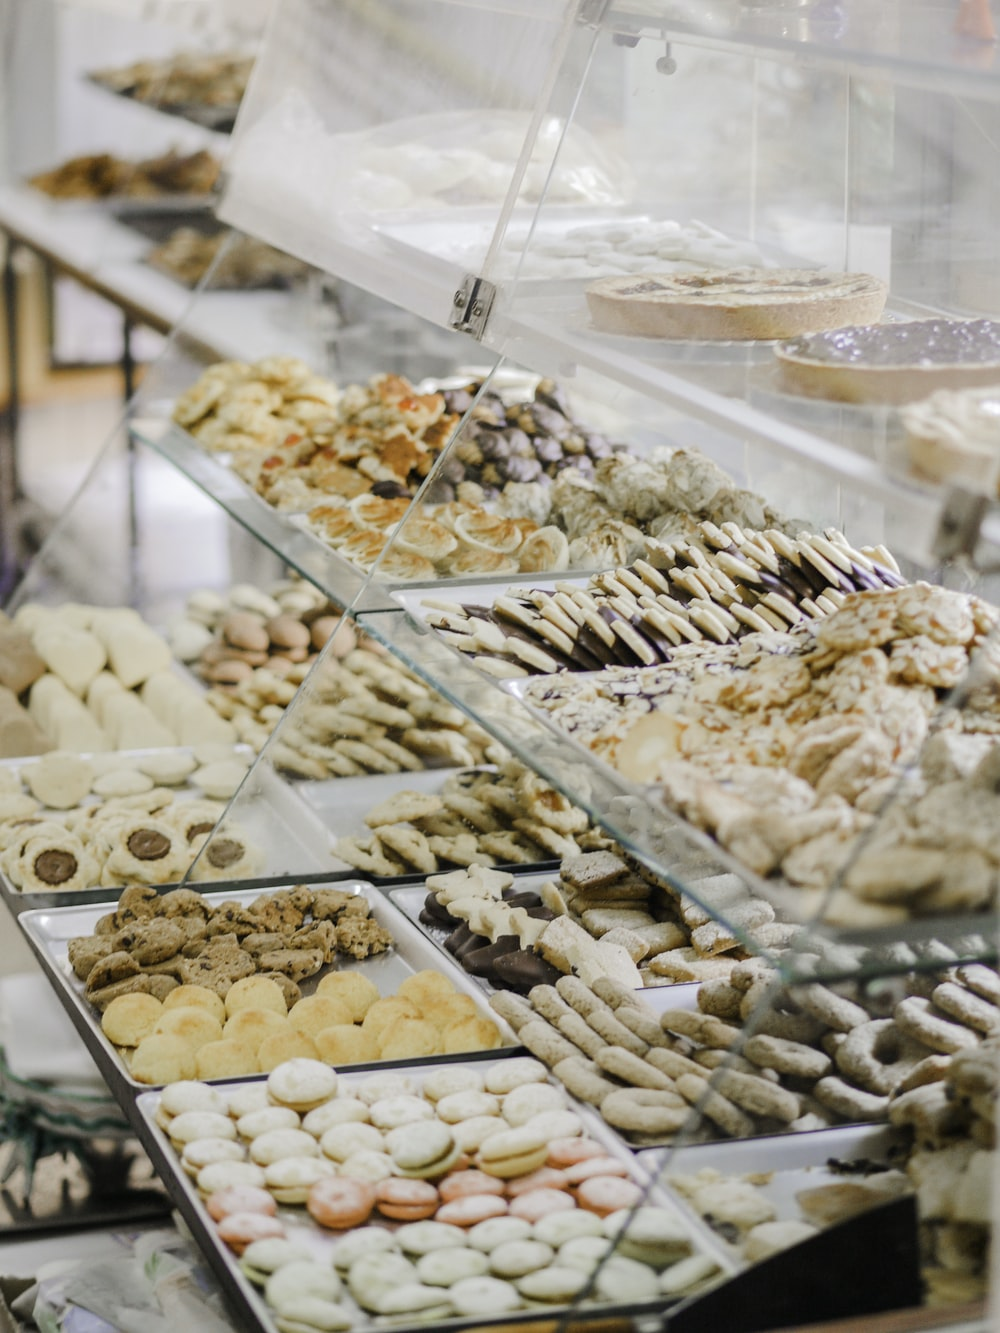 baked pastry lot in serve-over counter